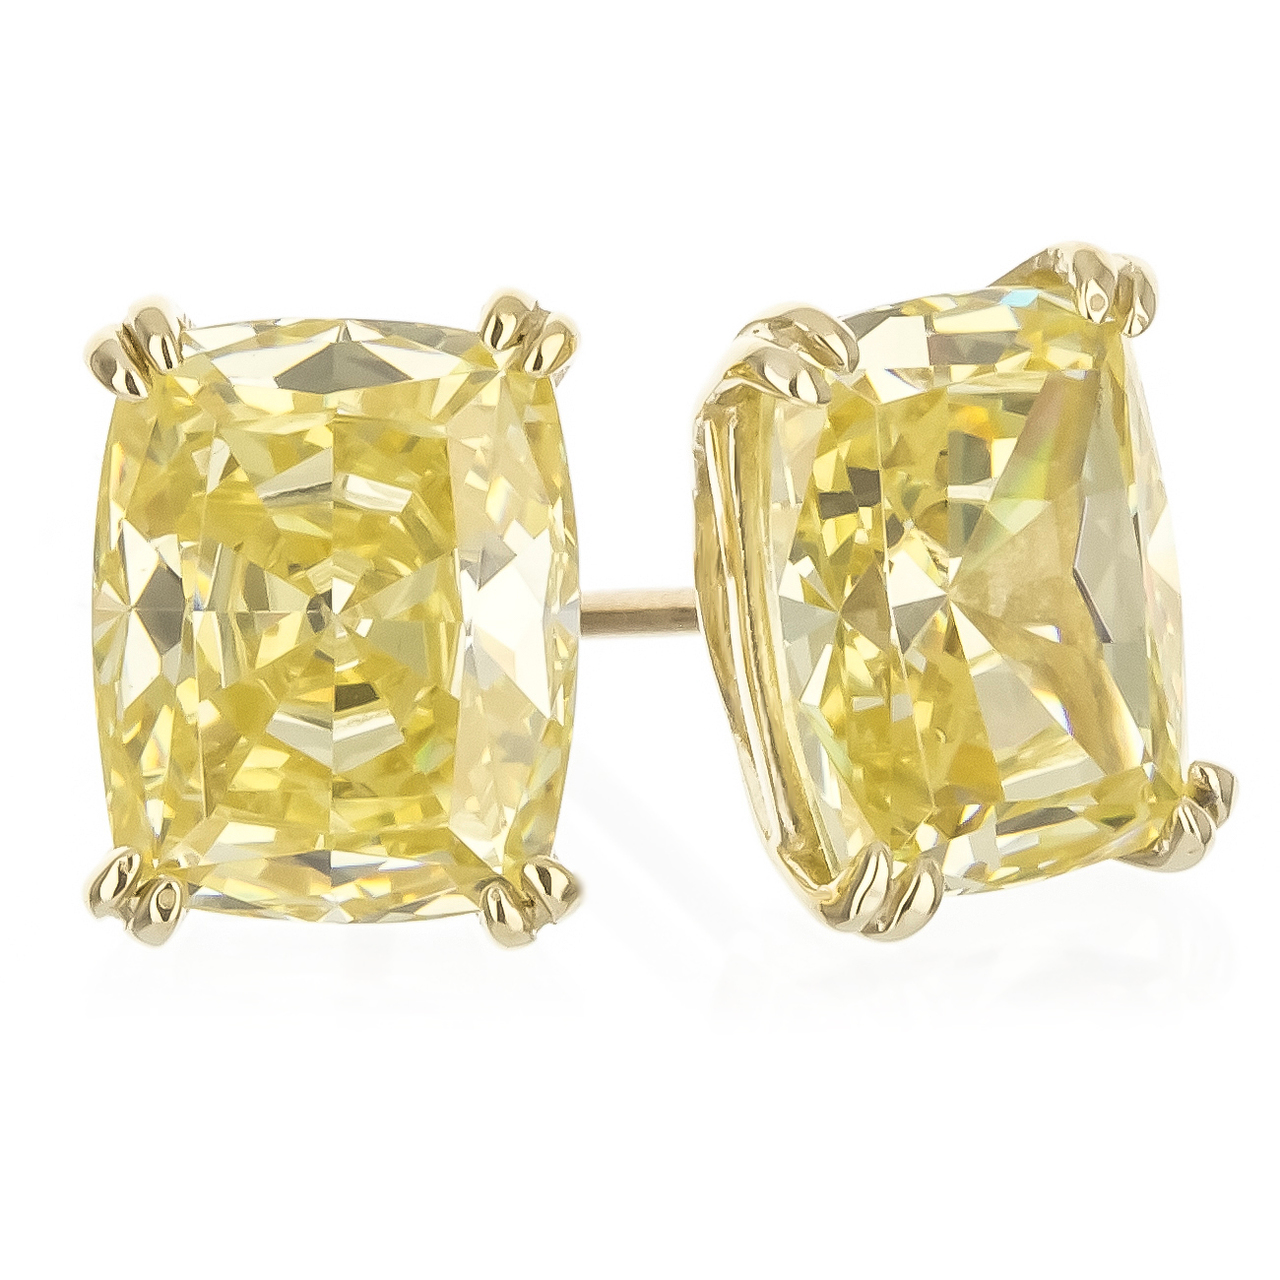 Elongated Cushion Cut with Split Prongs Stud Earrings